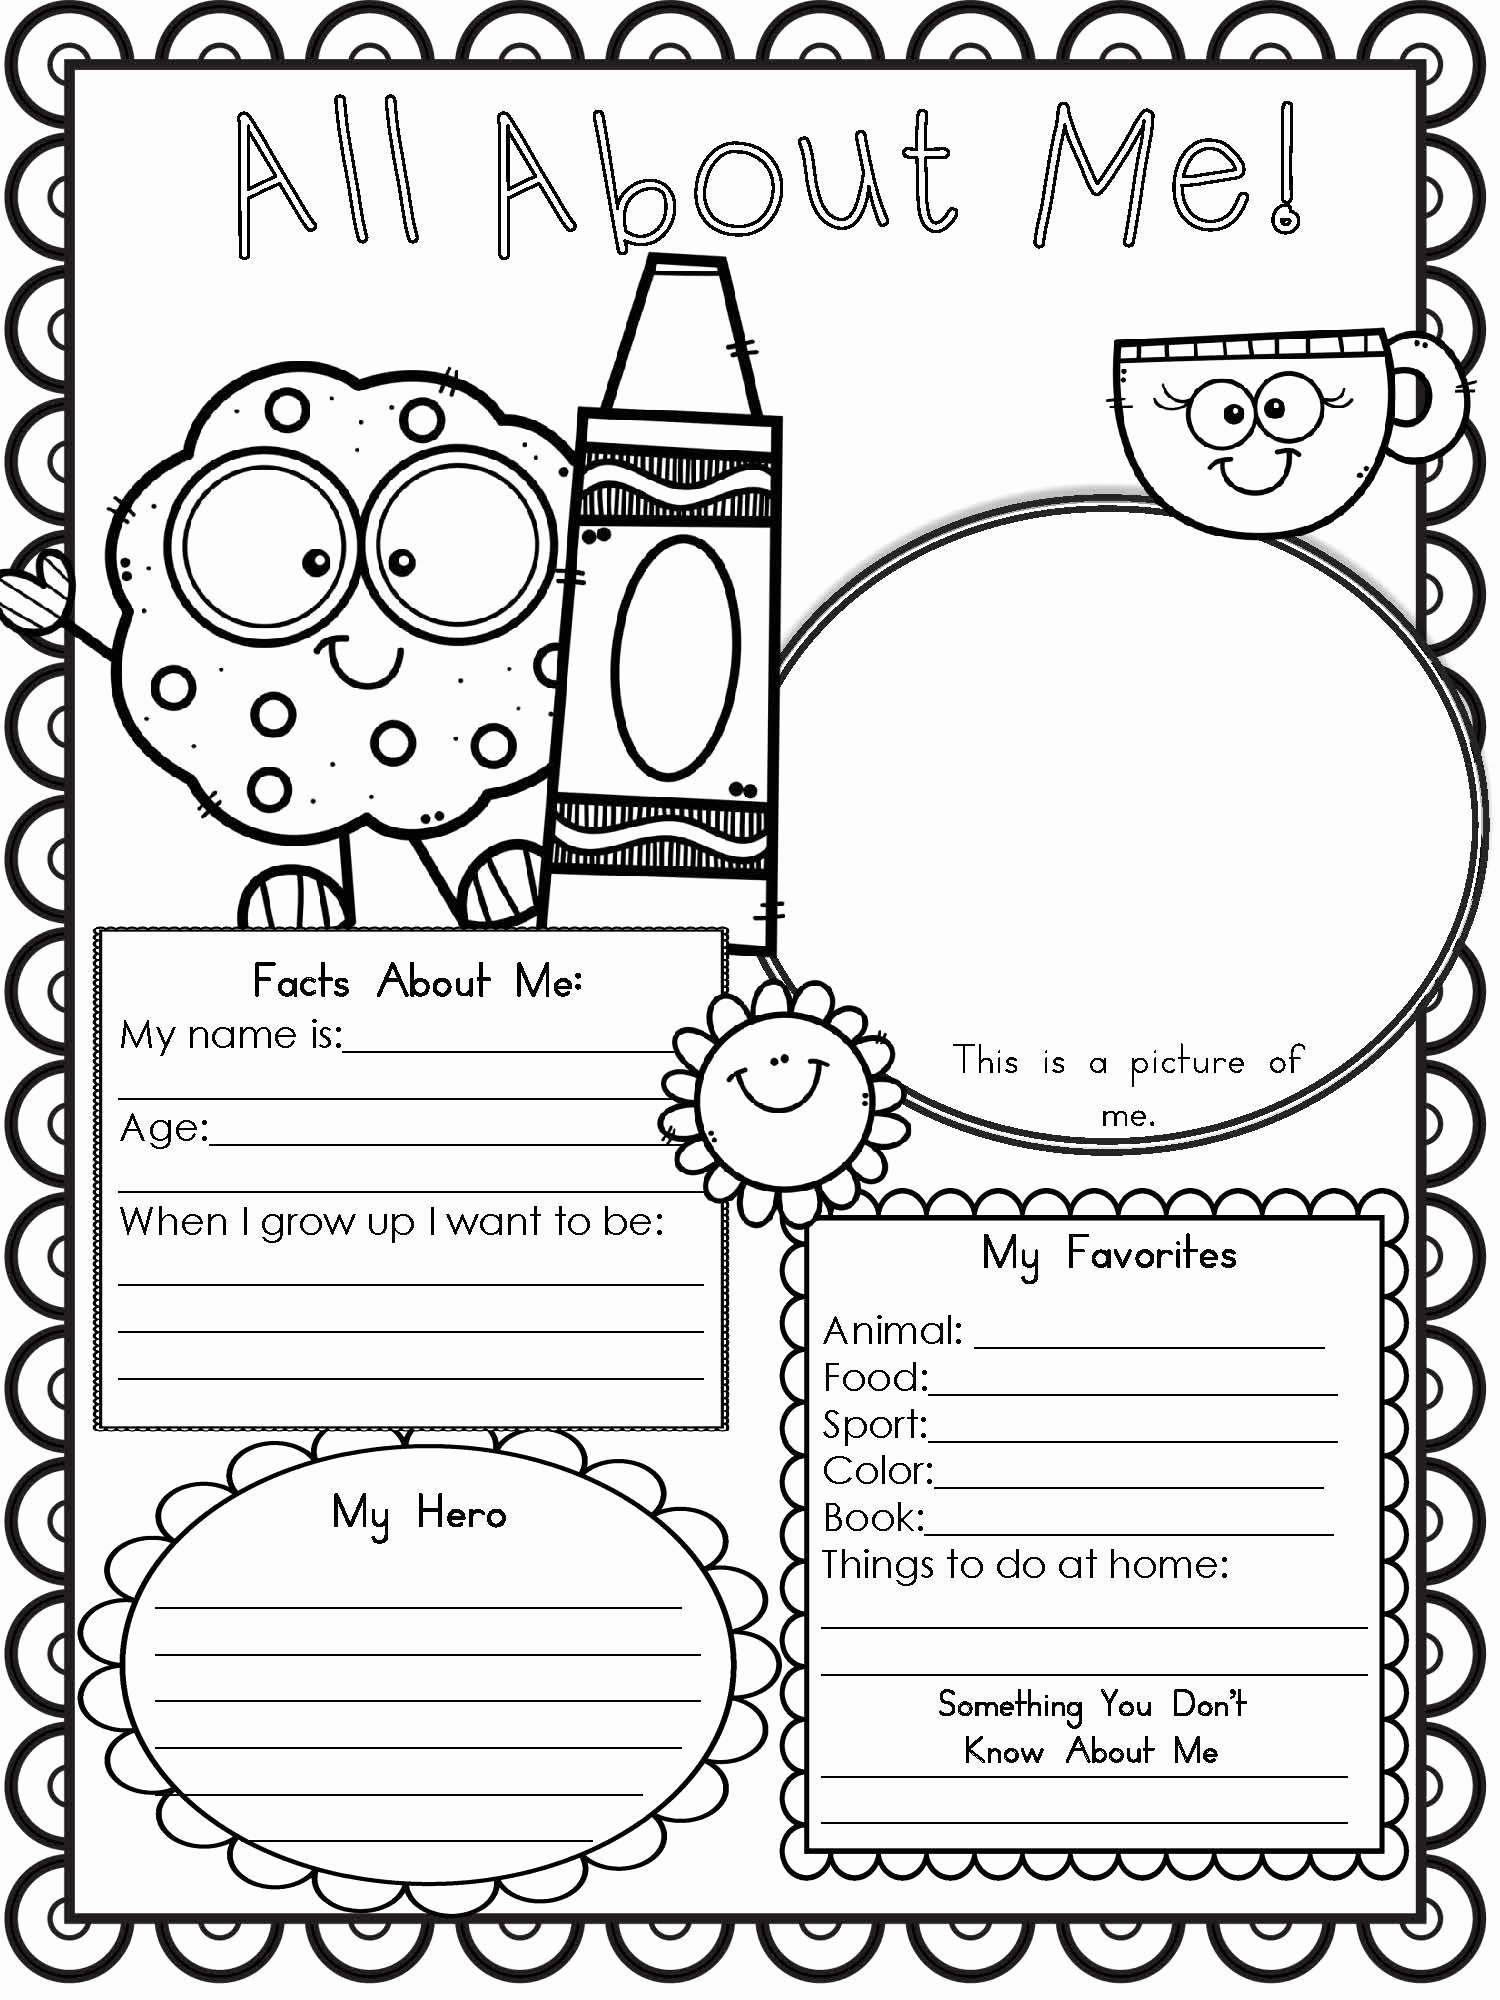 All About Me Worksheets for Preschoolers Best Of Free Printable All About Me Worksheet Modern Homeschool Family